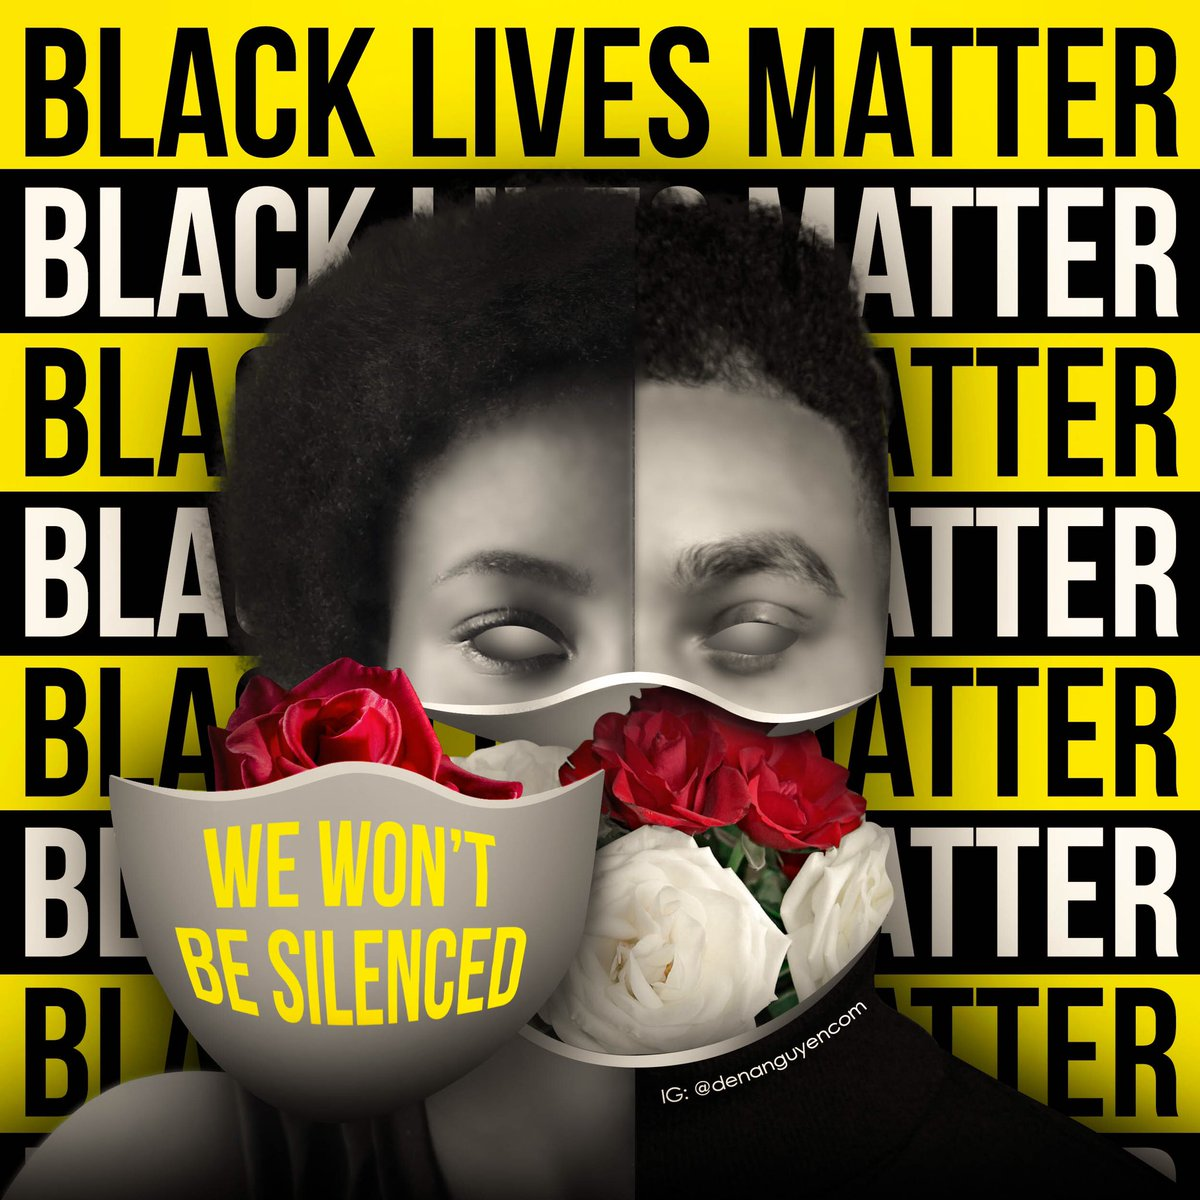 We won't be silenced. #BlackLivesMatters https://t.co/ujLnCYrwBS